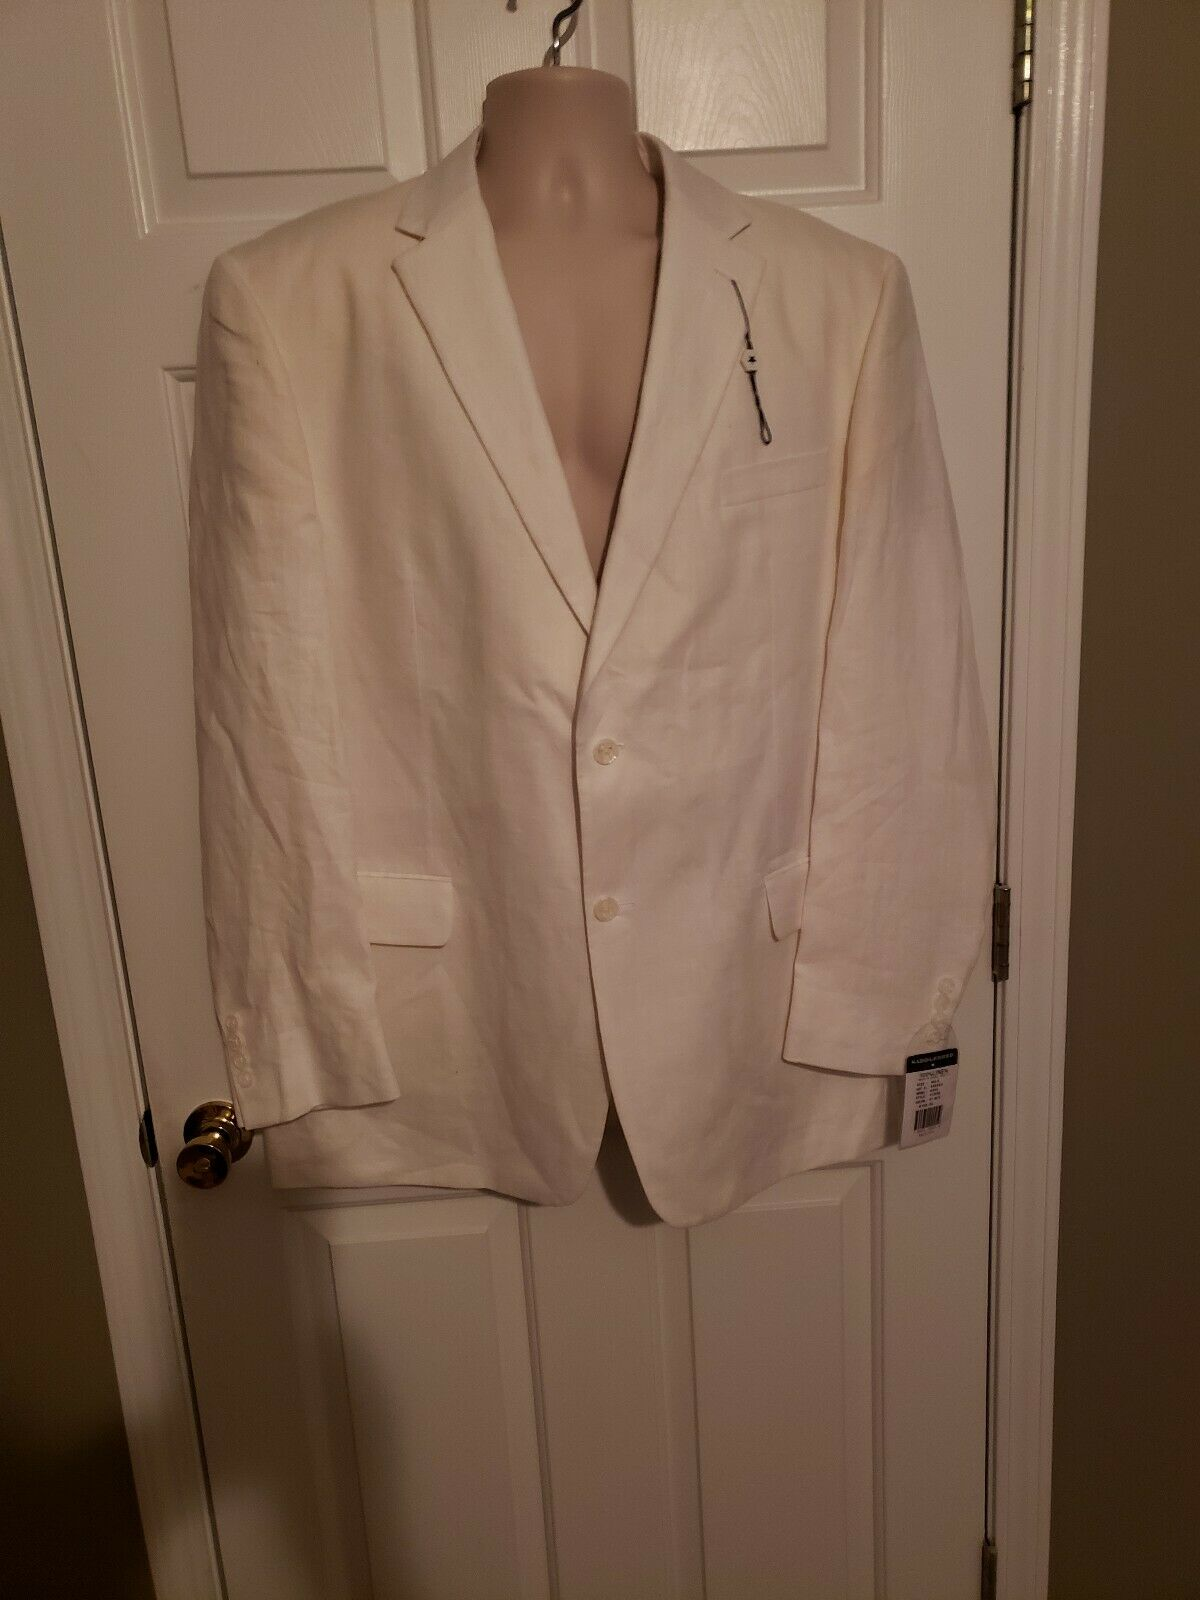 Saddlebread 100% linen off white size 46LG,.needs steam.cleaning